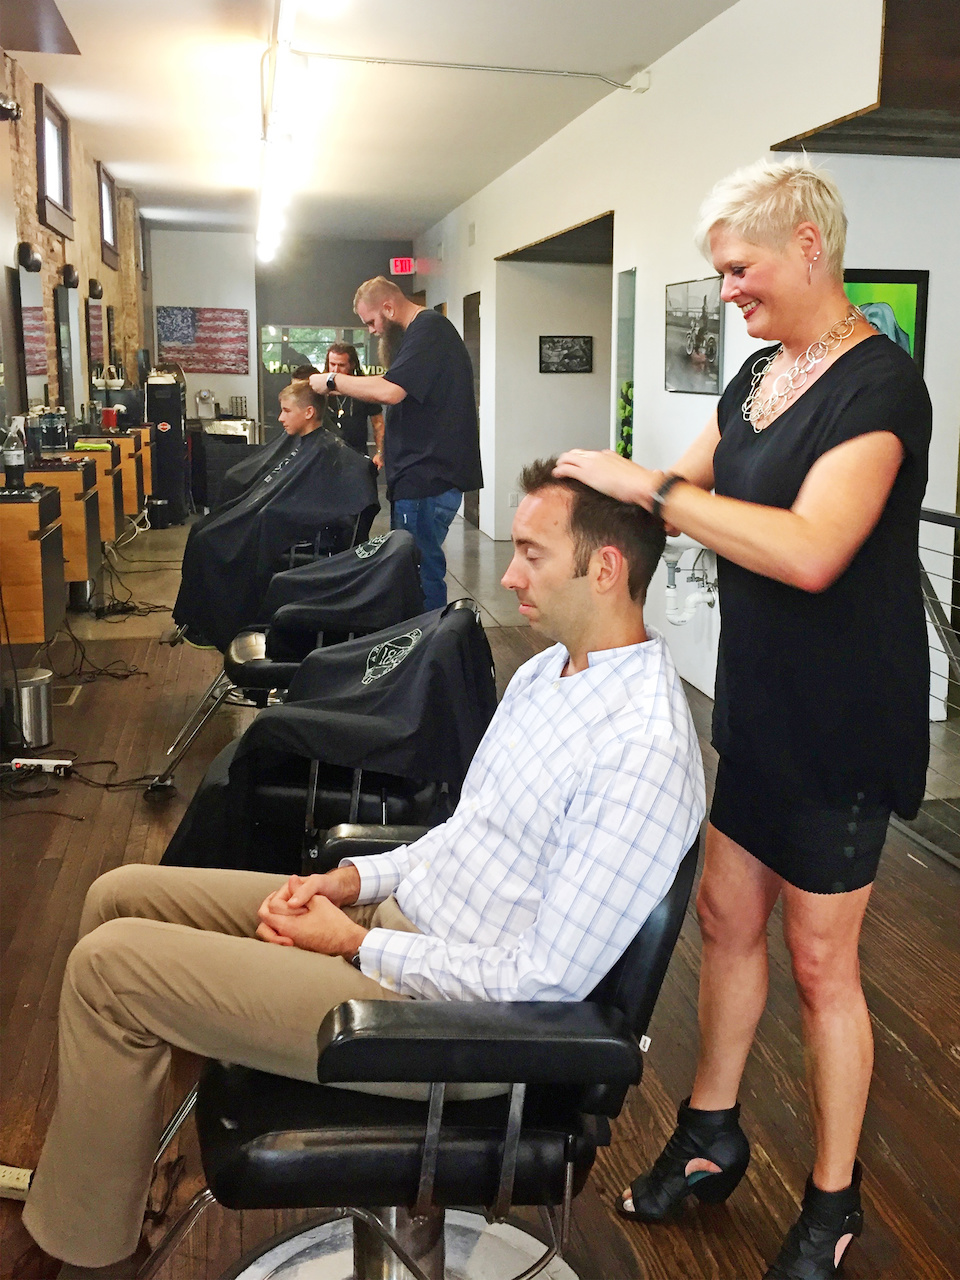 Barber Shop Louisville : Beyond the Basic Barber Shop: Louisville Salons for Men